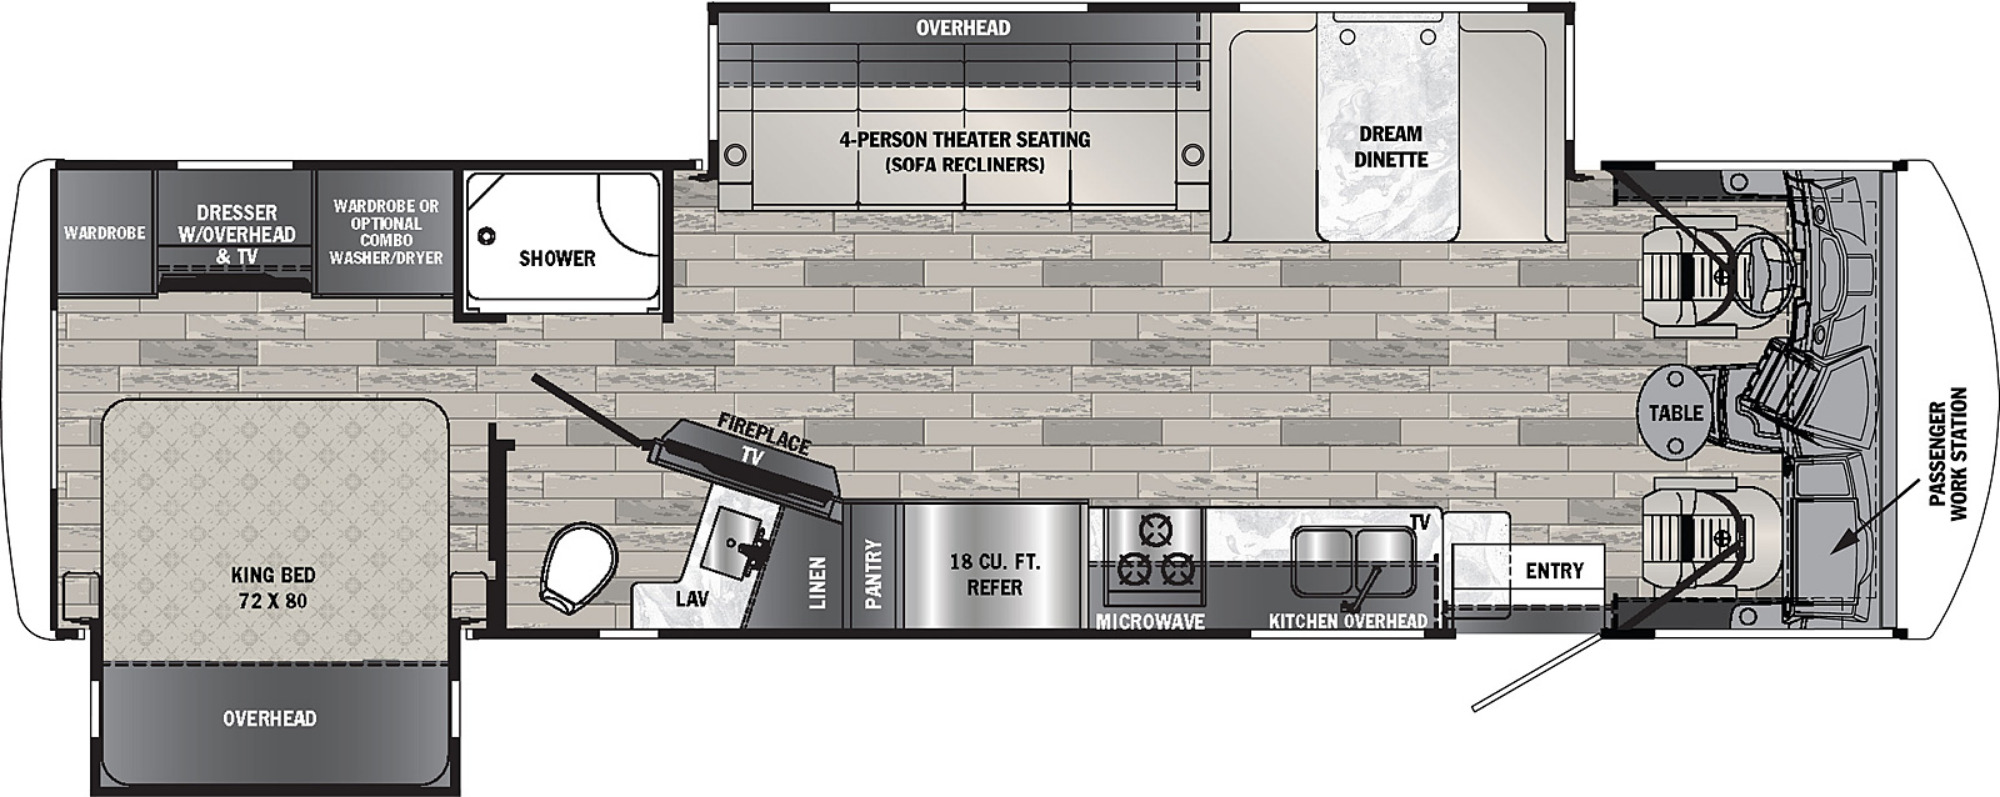 View Floor Plan for 2022 FOREST RIVER GEORGETOWN 5 SERIES 31L